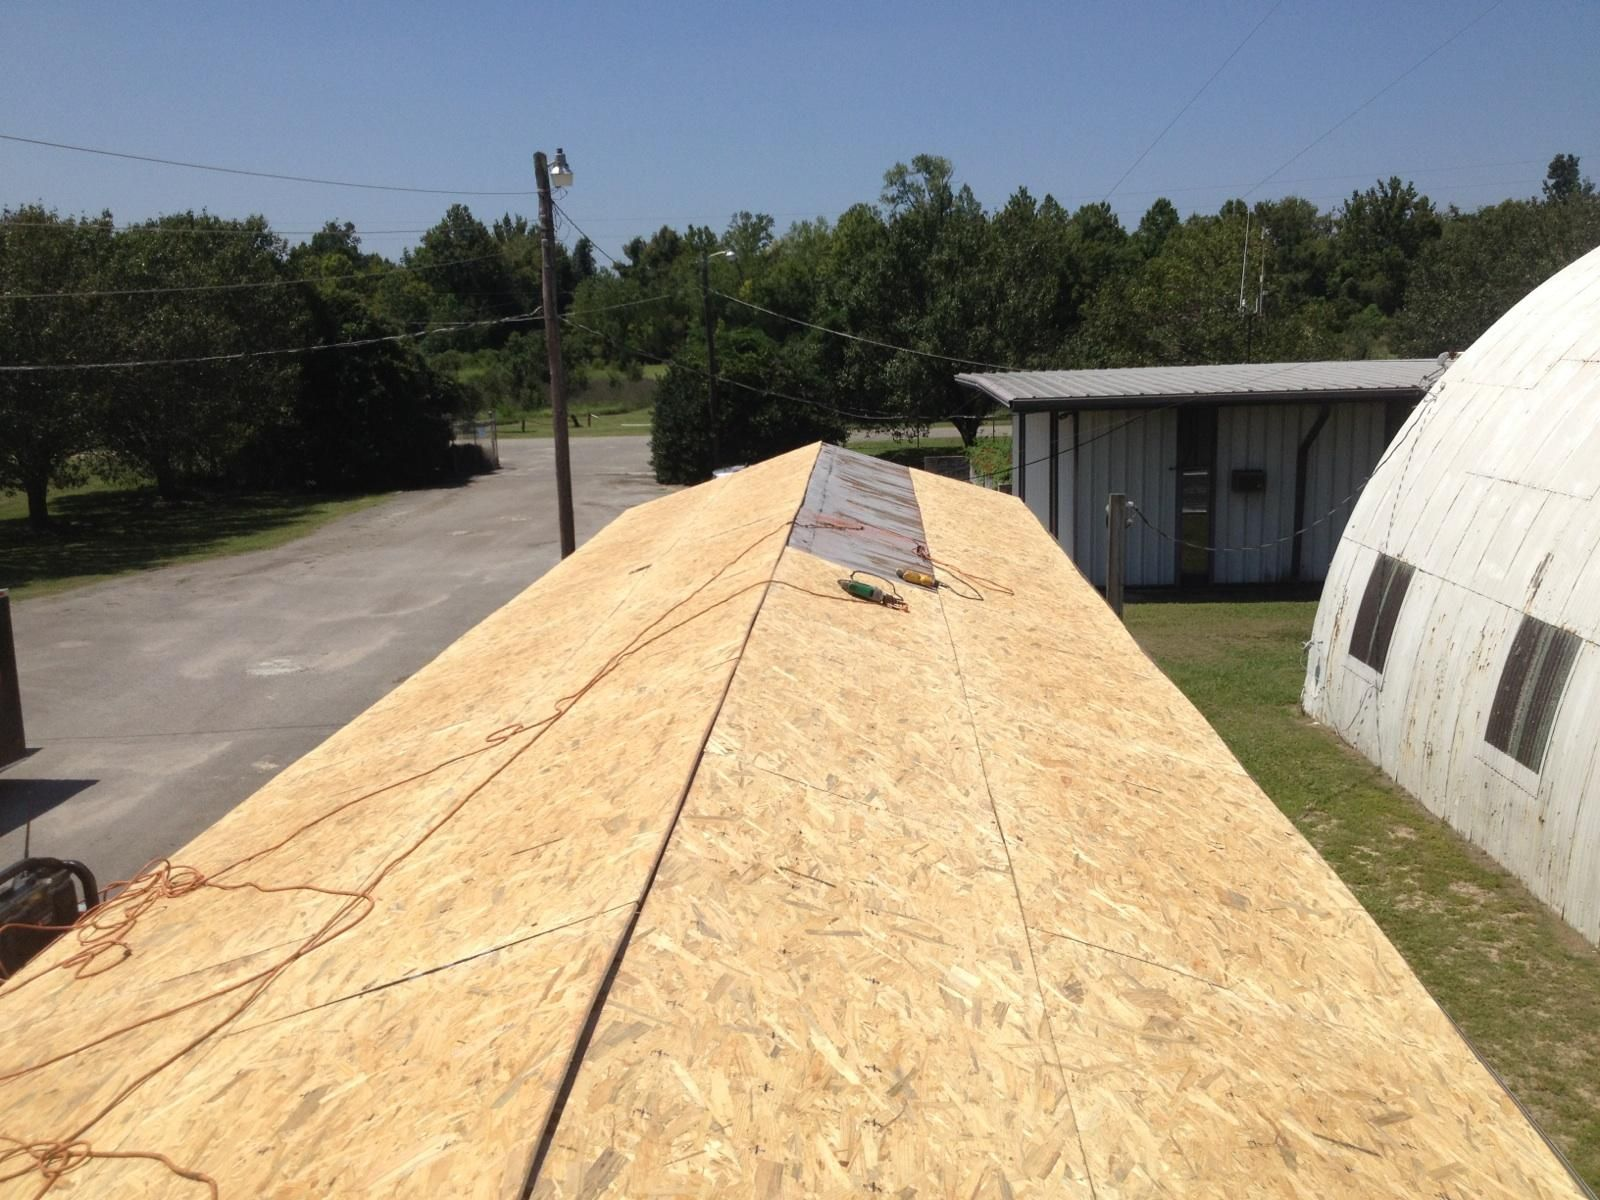 Rubber Roofing Mobile Homes Roofing Rubber Roofing Mobile Home Repair